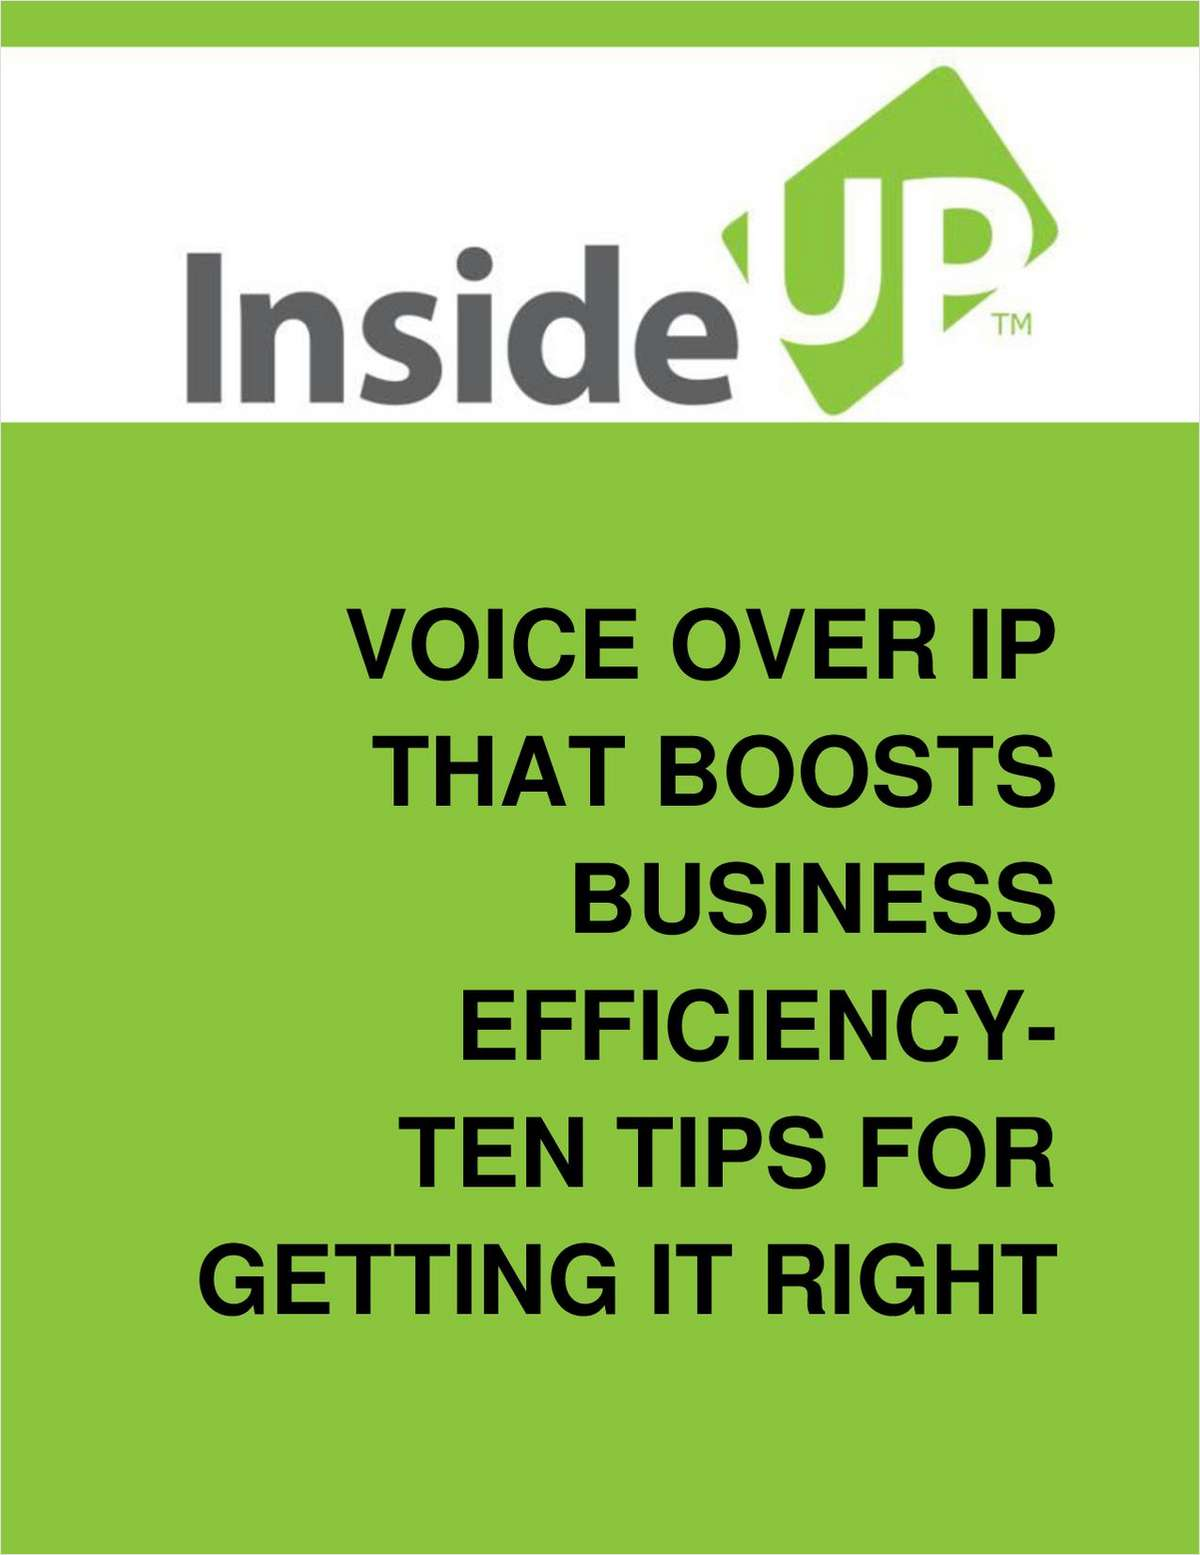 10 Tips For Boosting Business Efficiency With The Right VoIP Phone System